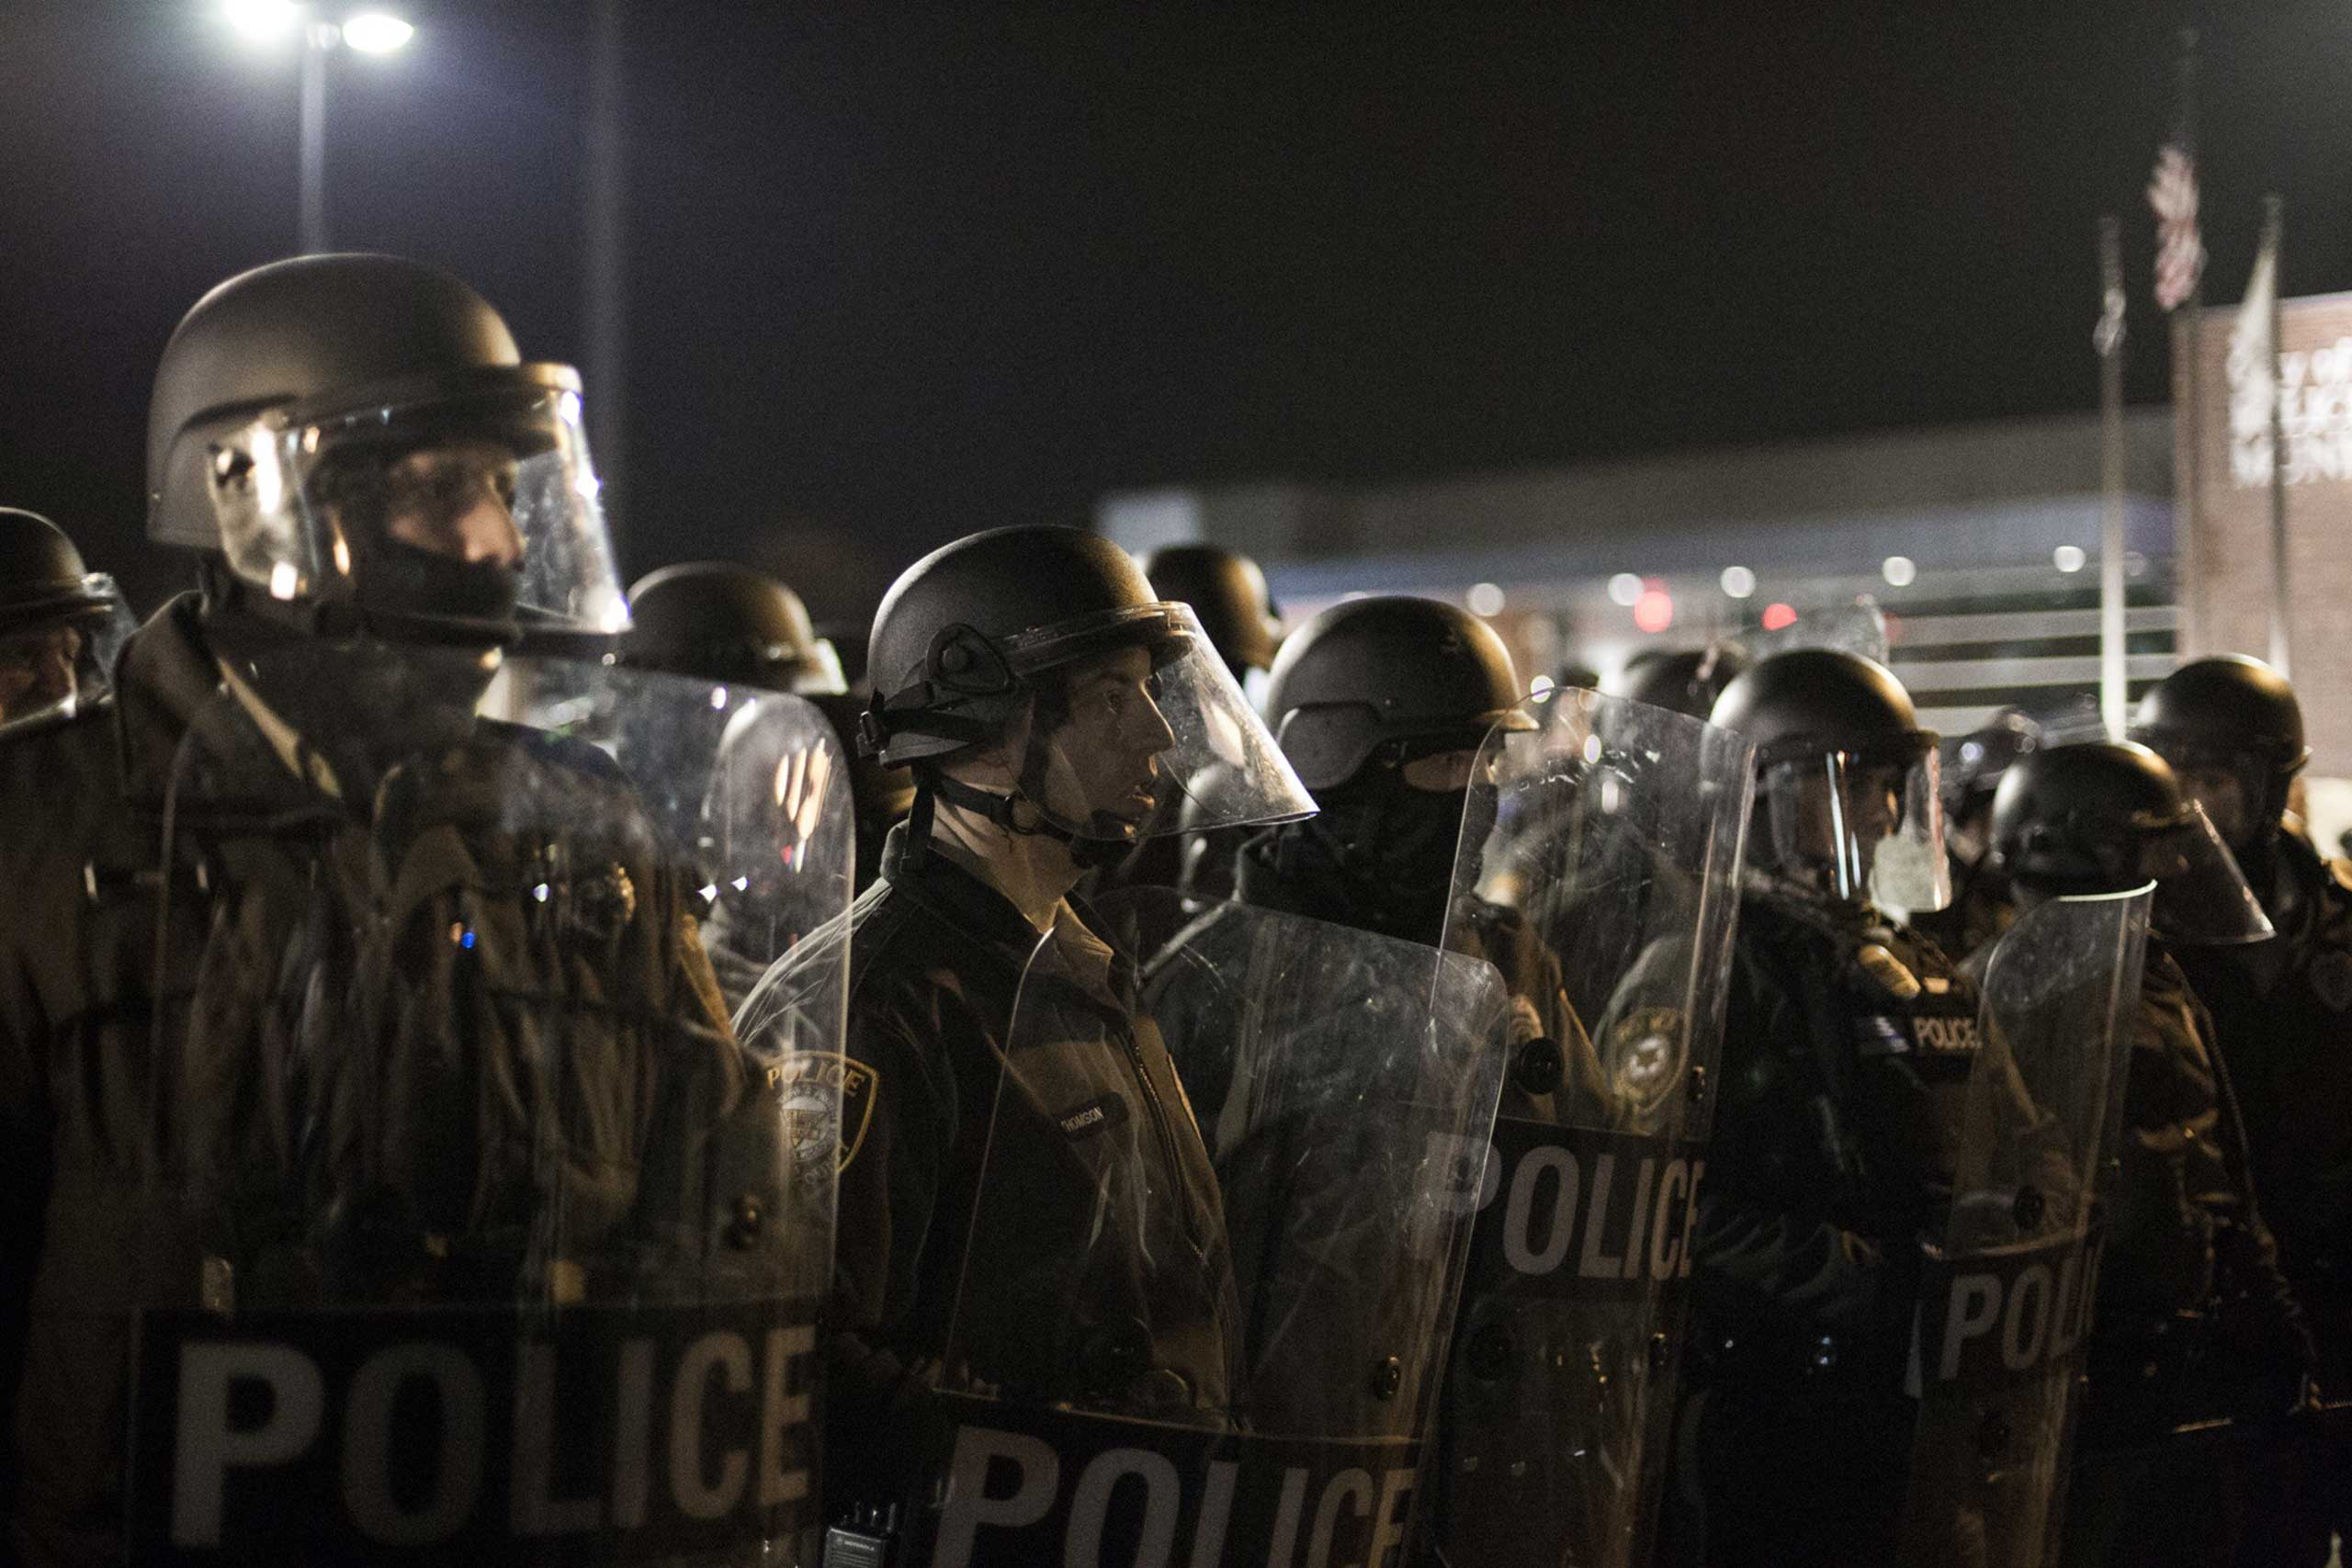 Police in riot gear stand in line opposing protesters in Ferguson, Mo. on Nov. 28, 2014.